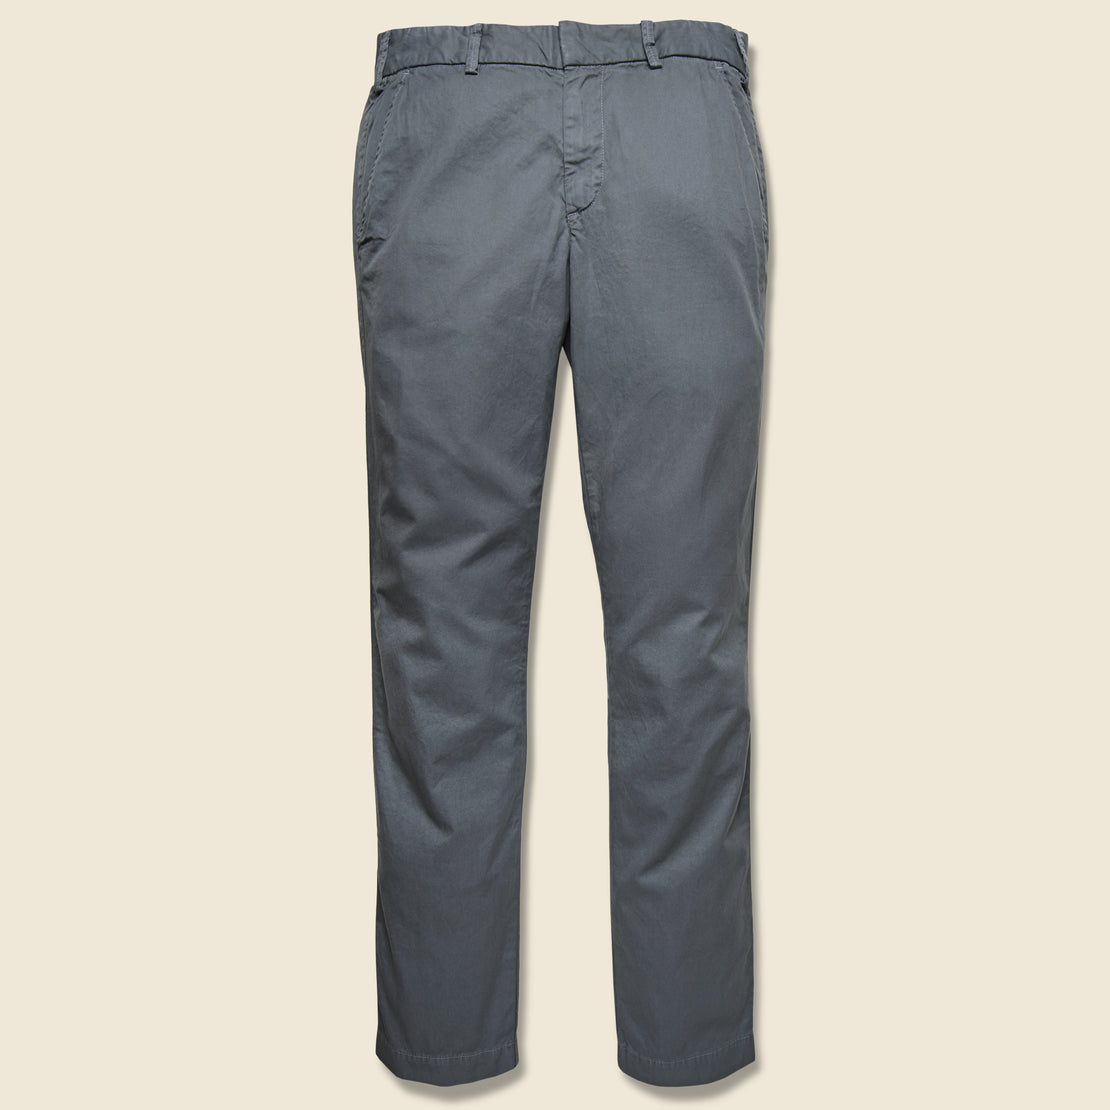 Save Khaki Light Twill Trouser - Metal